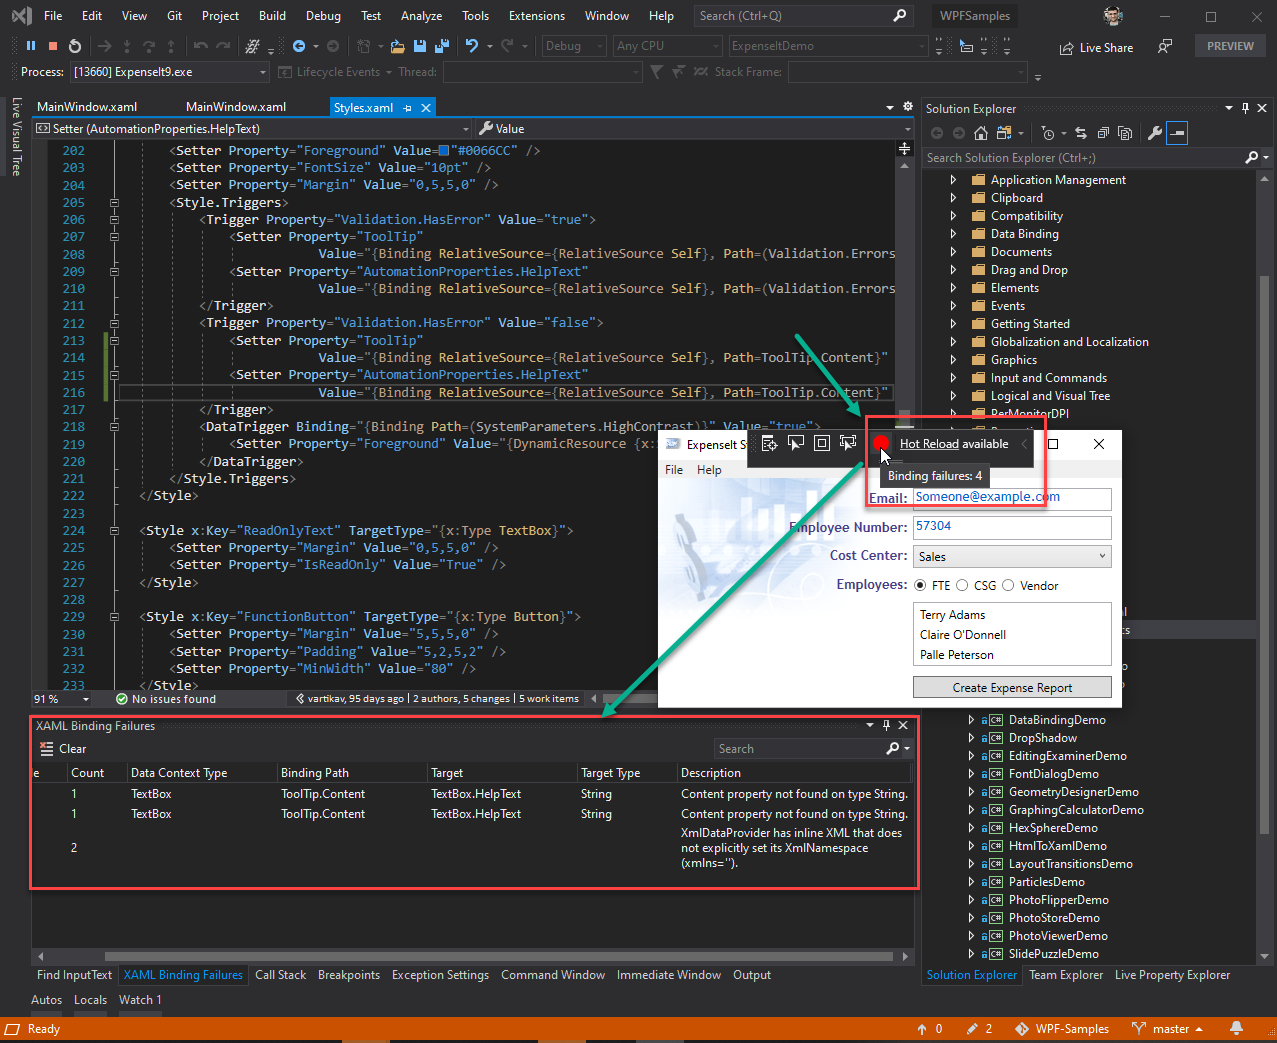 Image XAML Binding Failures 8211 VS 2019 Update 7 Preview 1